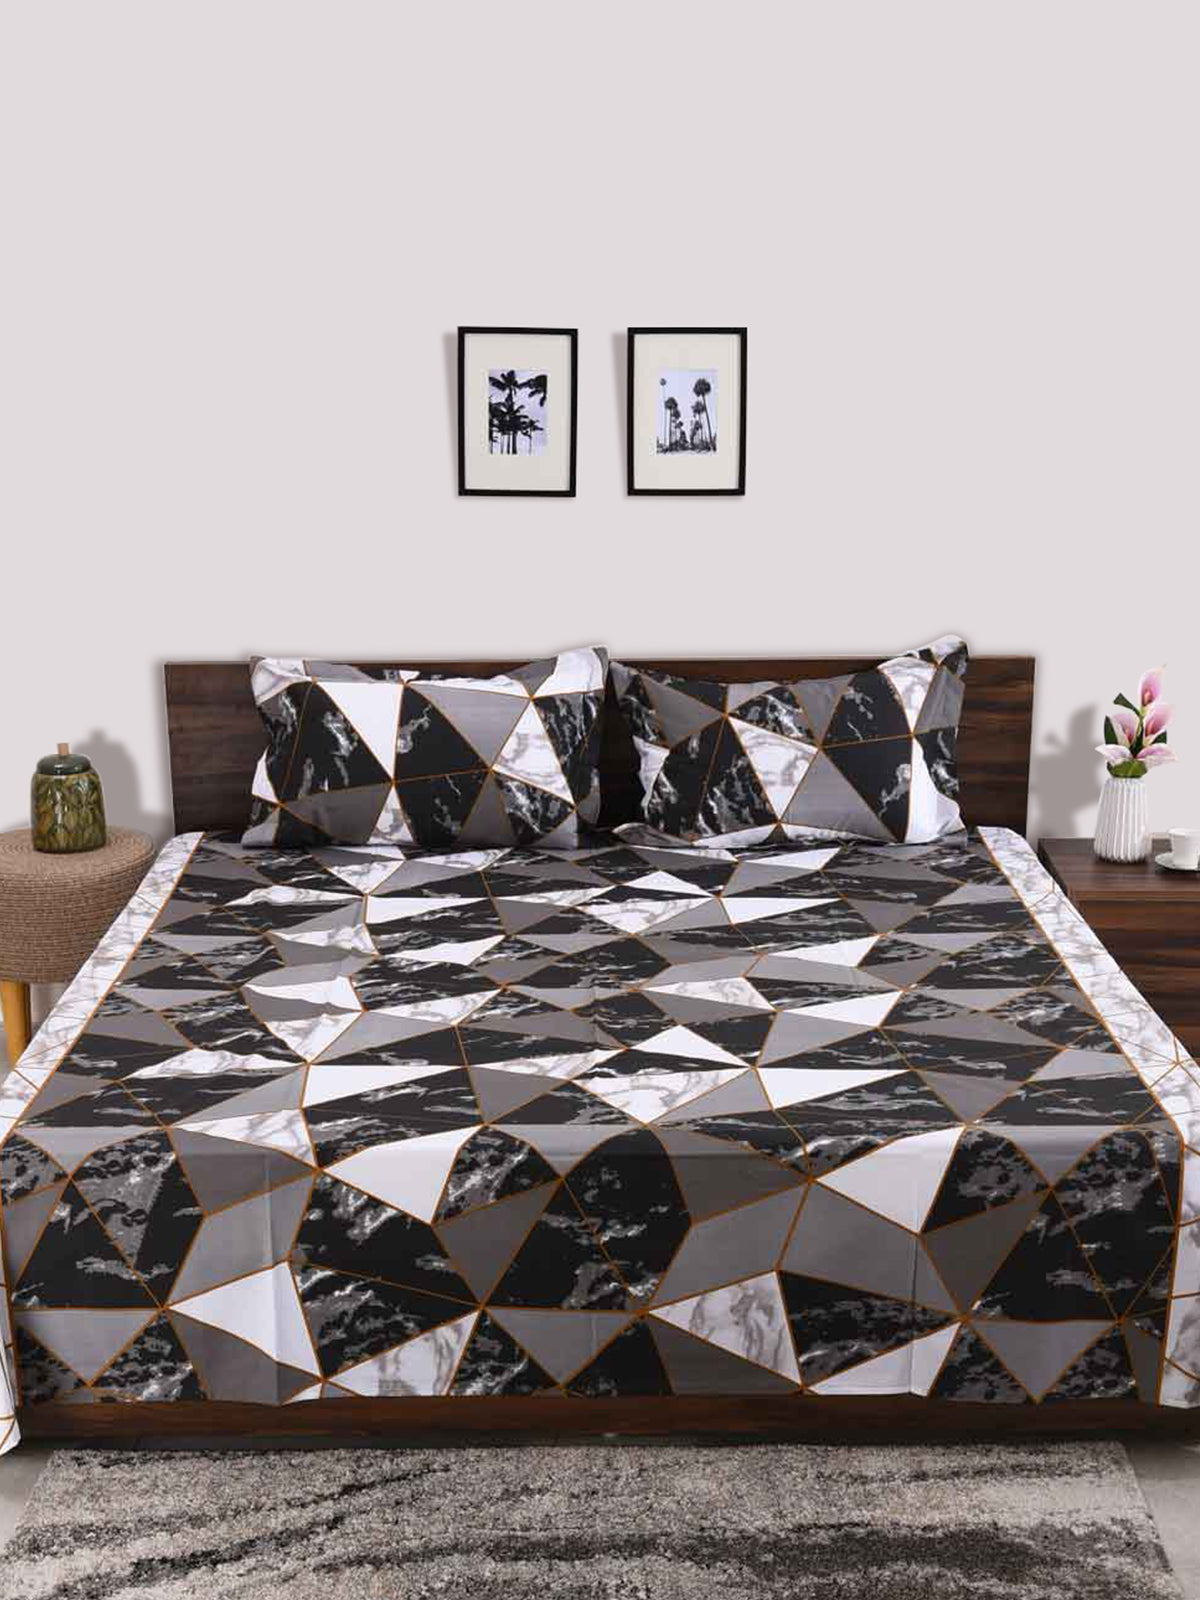 Black geometric cotton bed sheet double bed size 90x100inches - grey, white